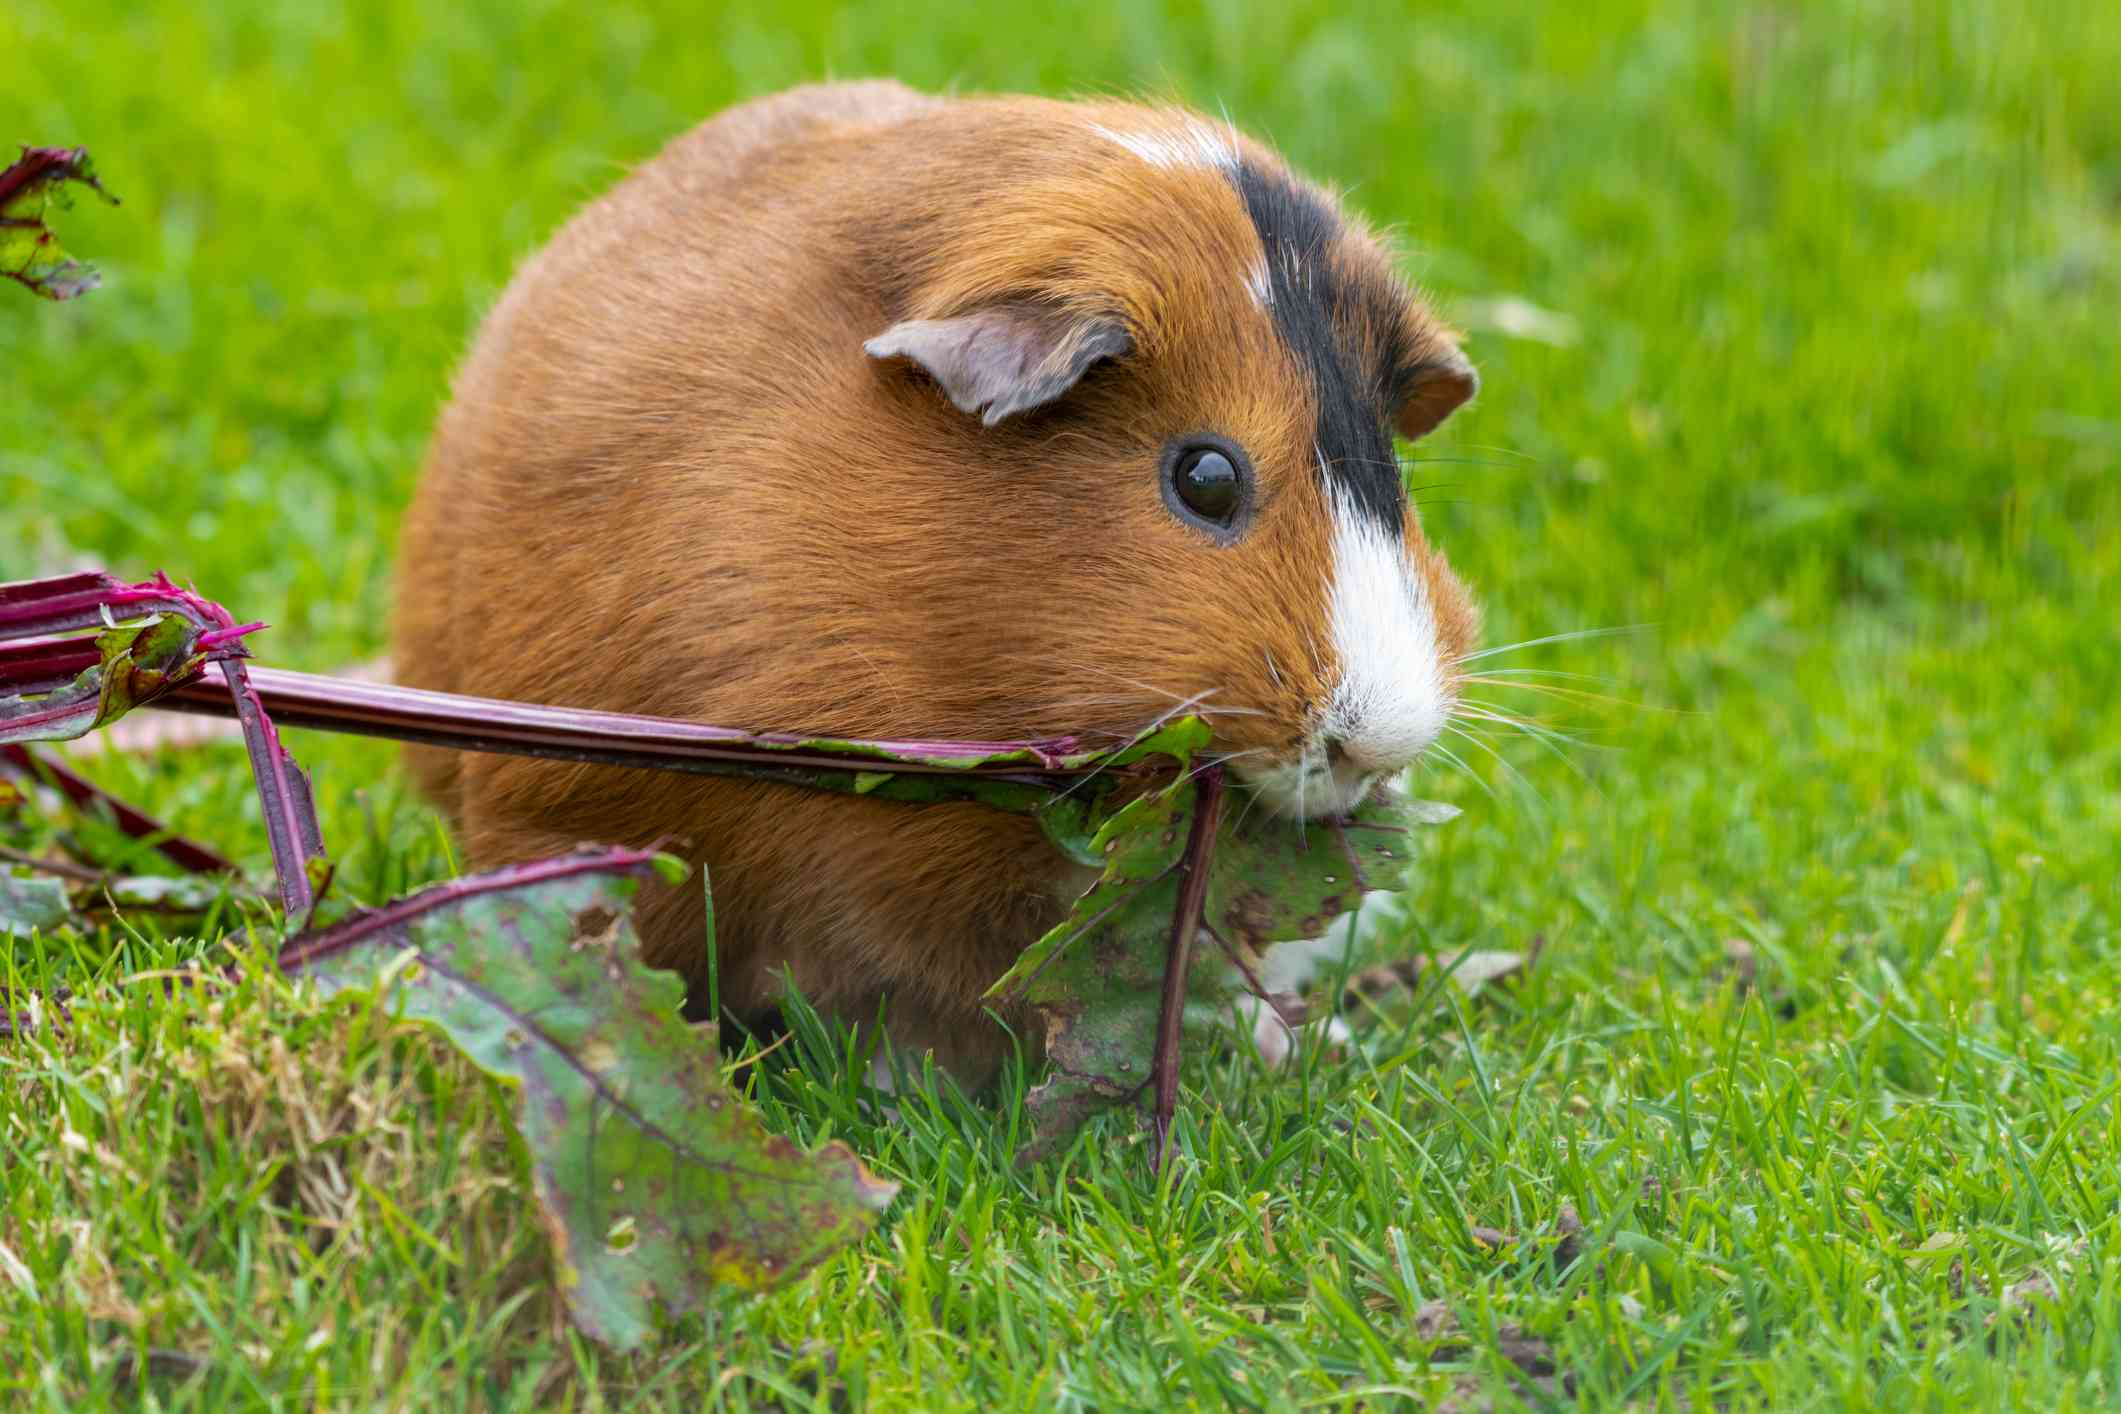 brown and white guinea pig eating beet root in the grass